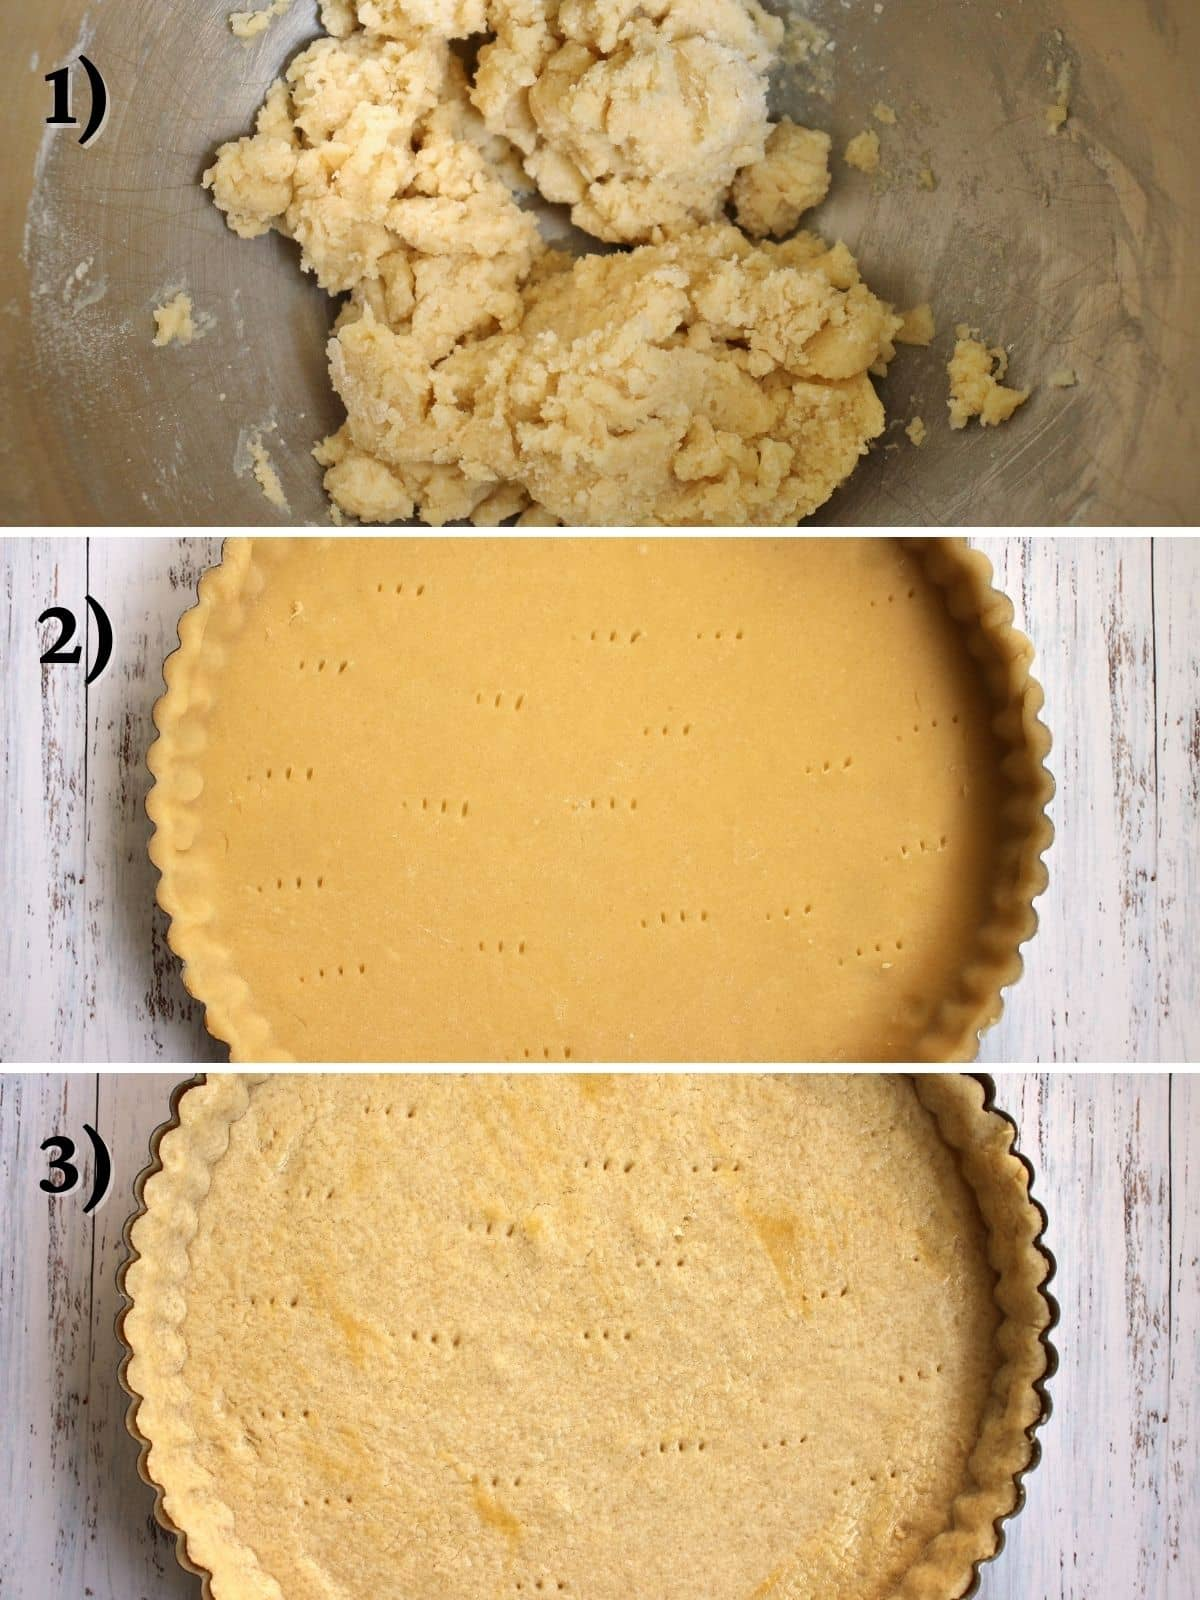 Tart dough in a metal bowl, and in a tart pan before and after baking.